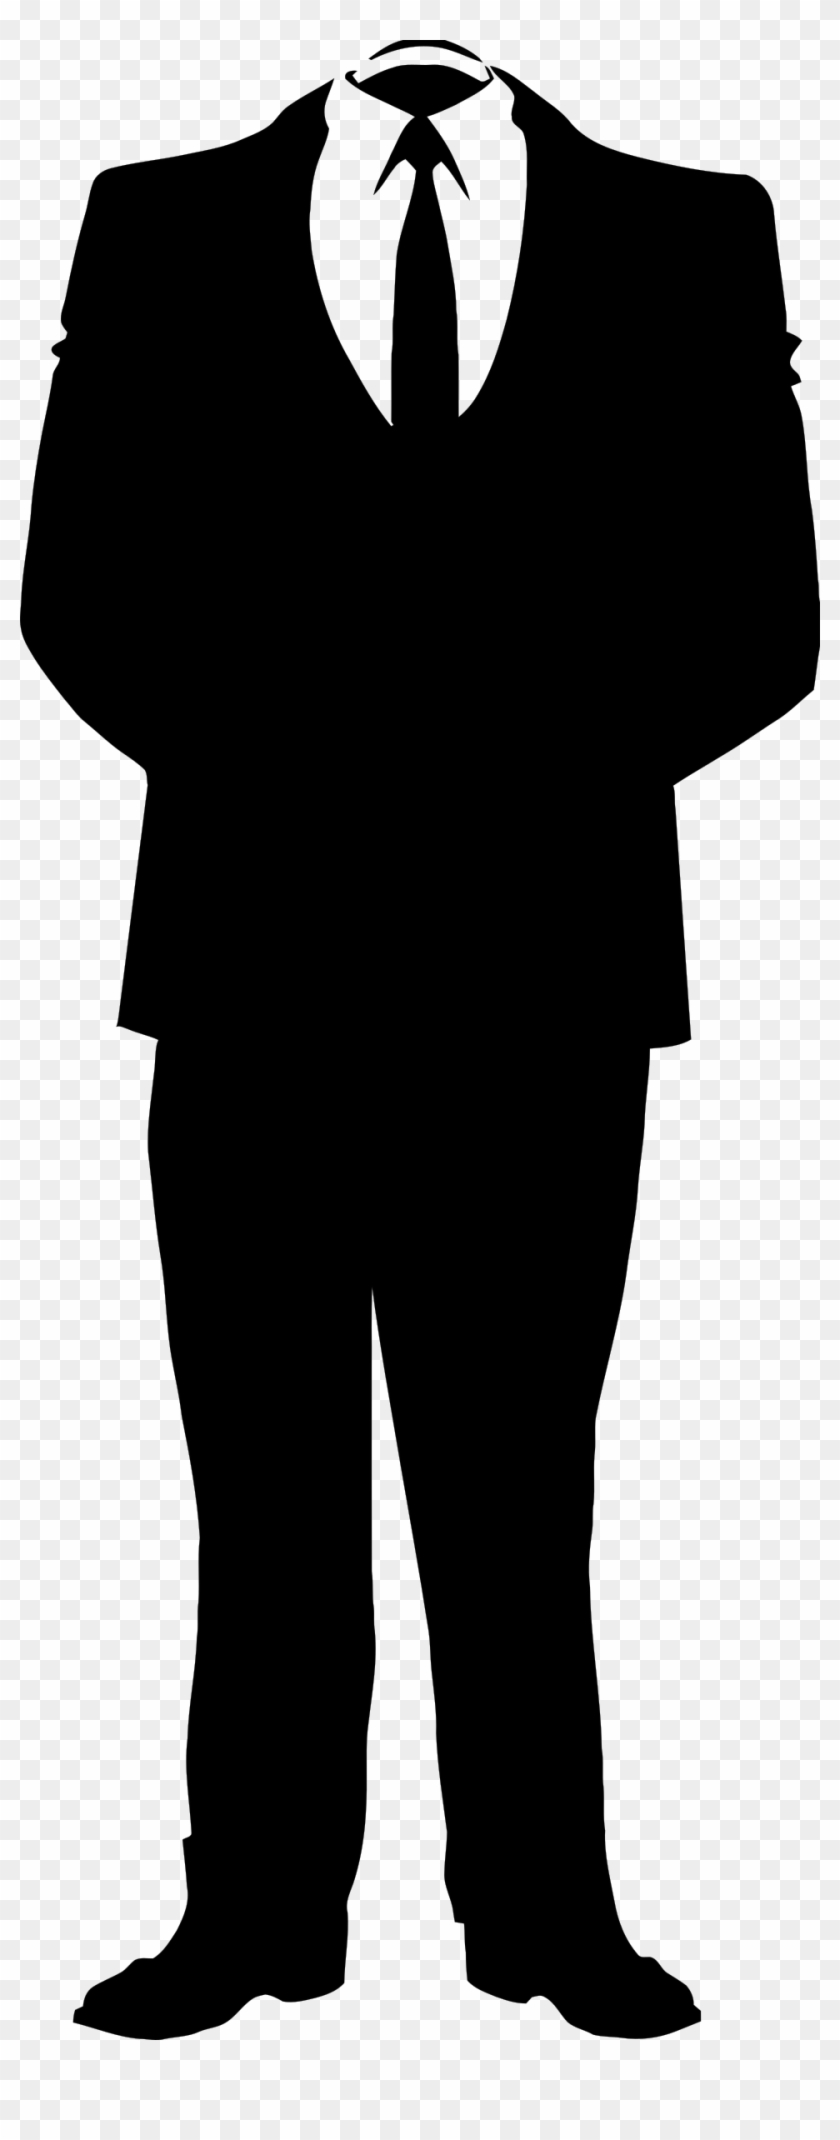 Tuxedo Png, Vector, PSD, and Clipart With Transparent Background for Free  Download | Pngtree